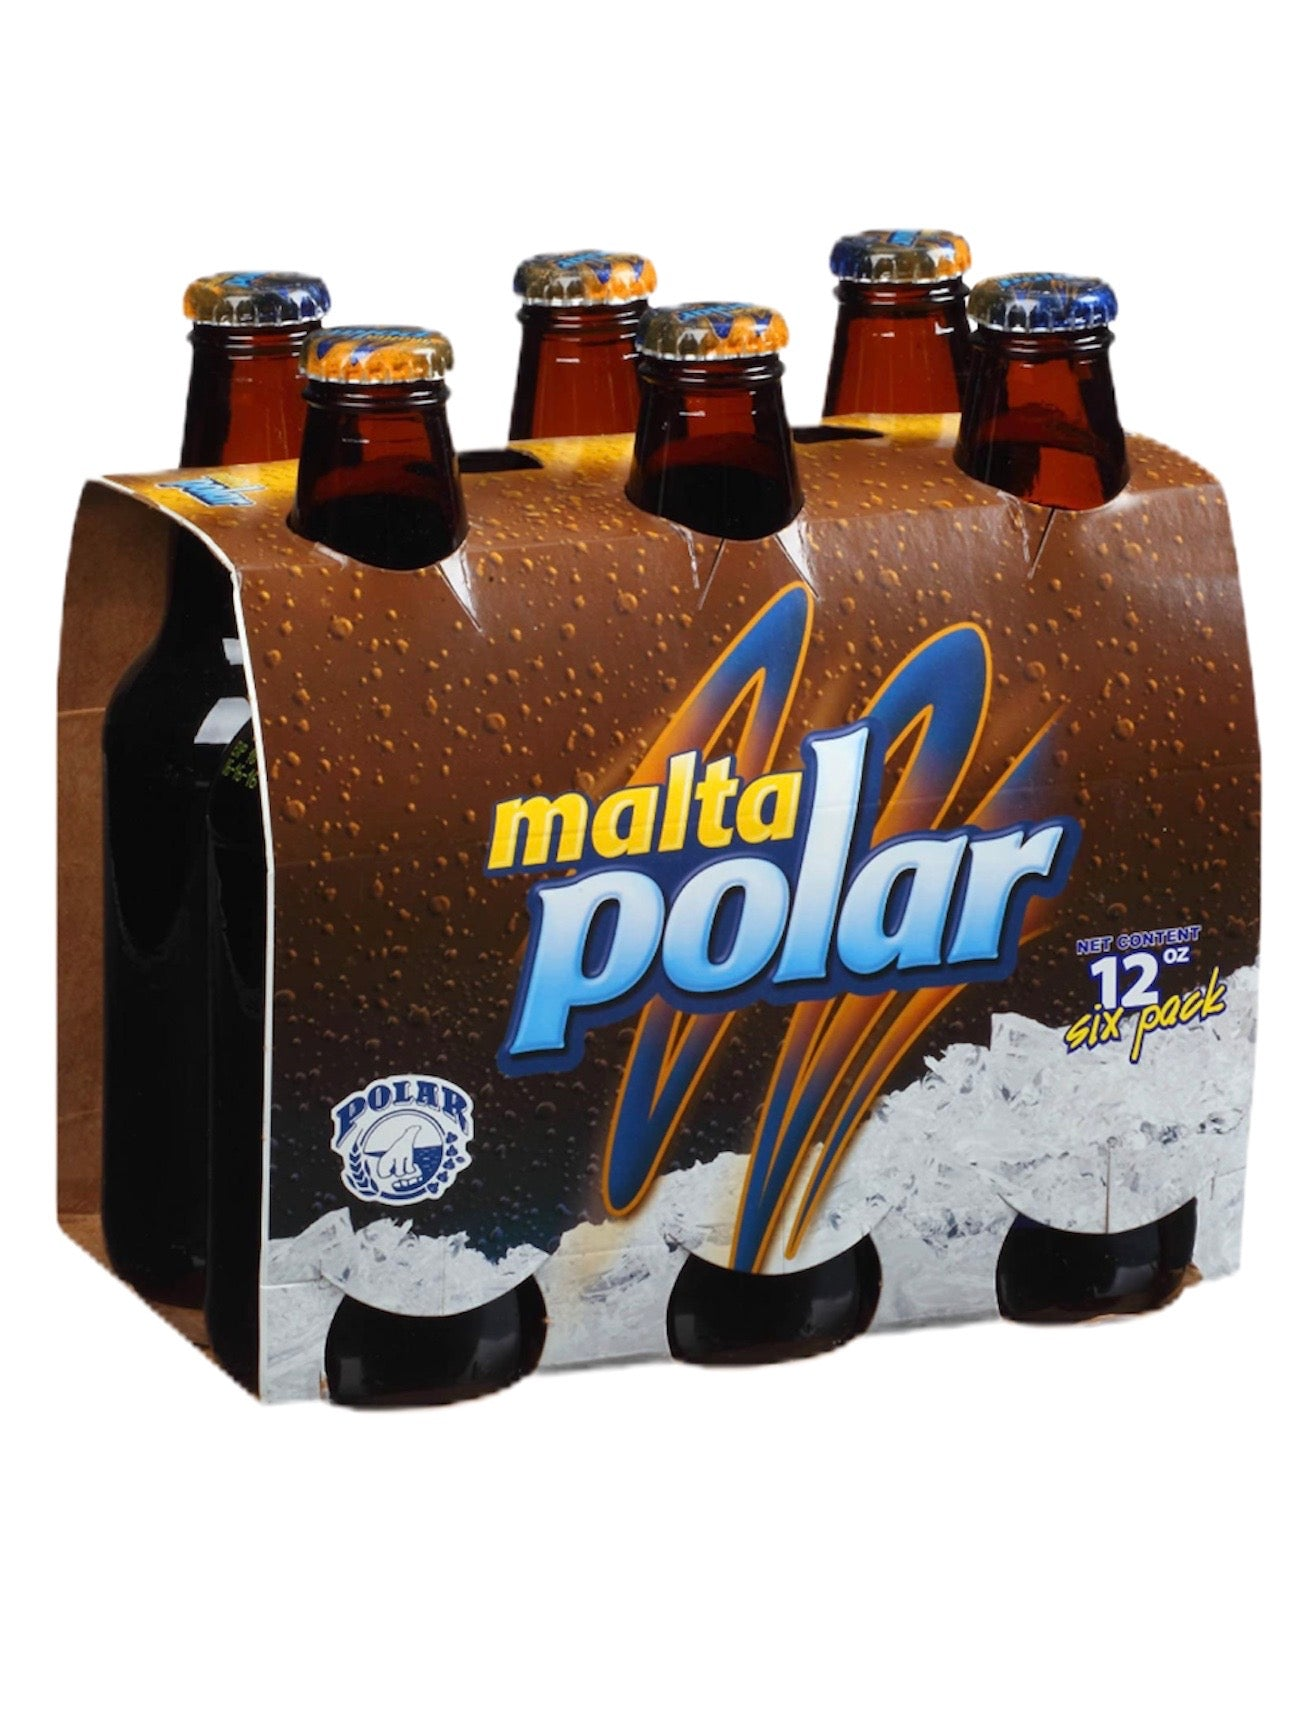 Malta Polar 6 unidades 12 oz botellas